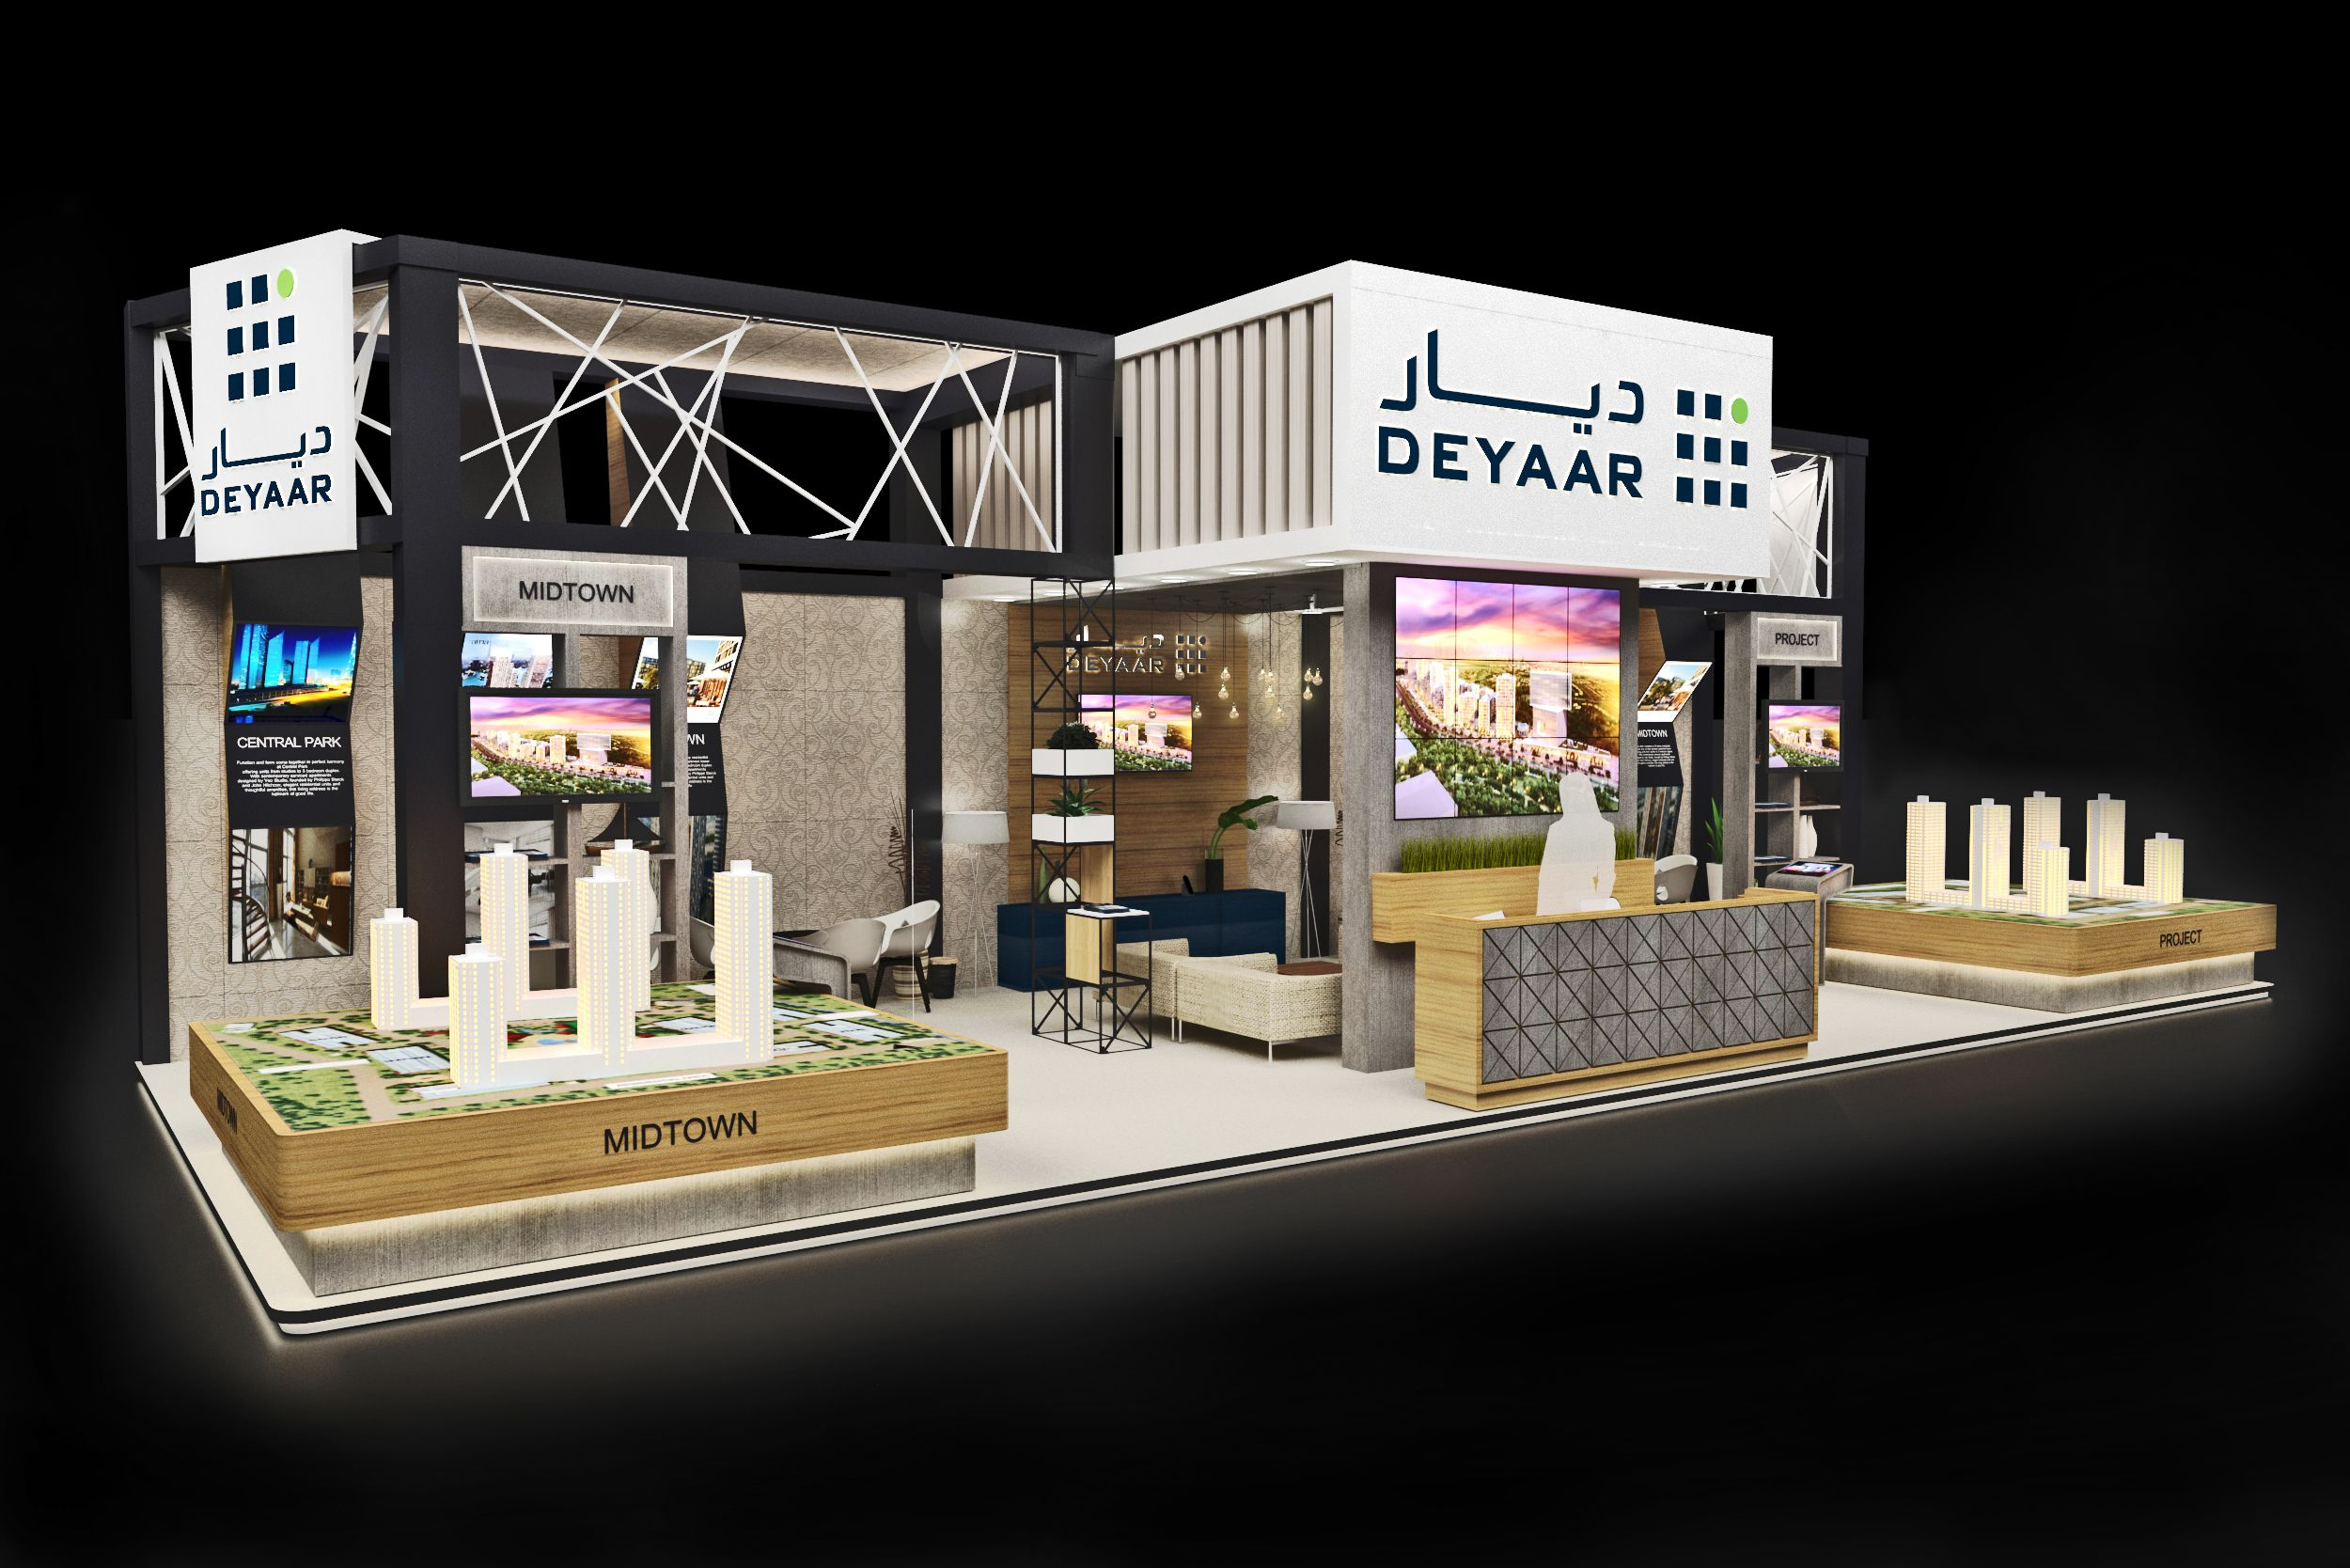 Property Exhibition Booth : Proposed design for deyaar at dubai property show mumbai booth